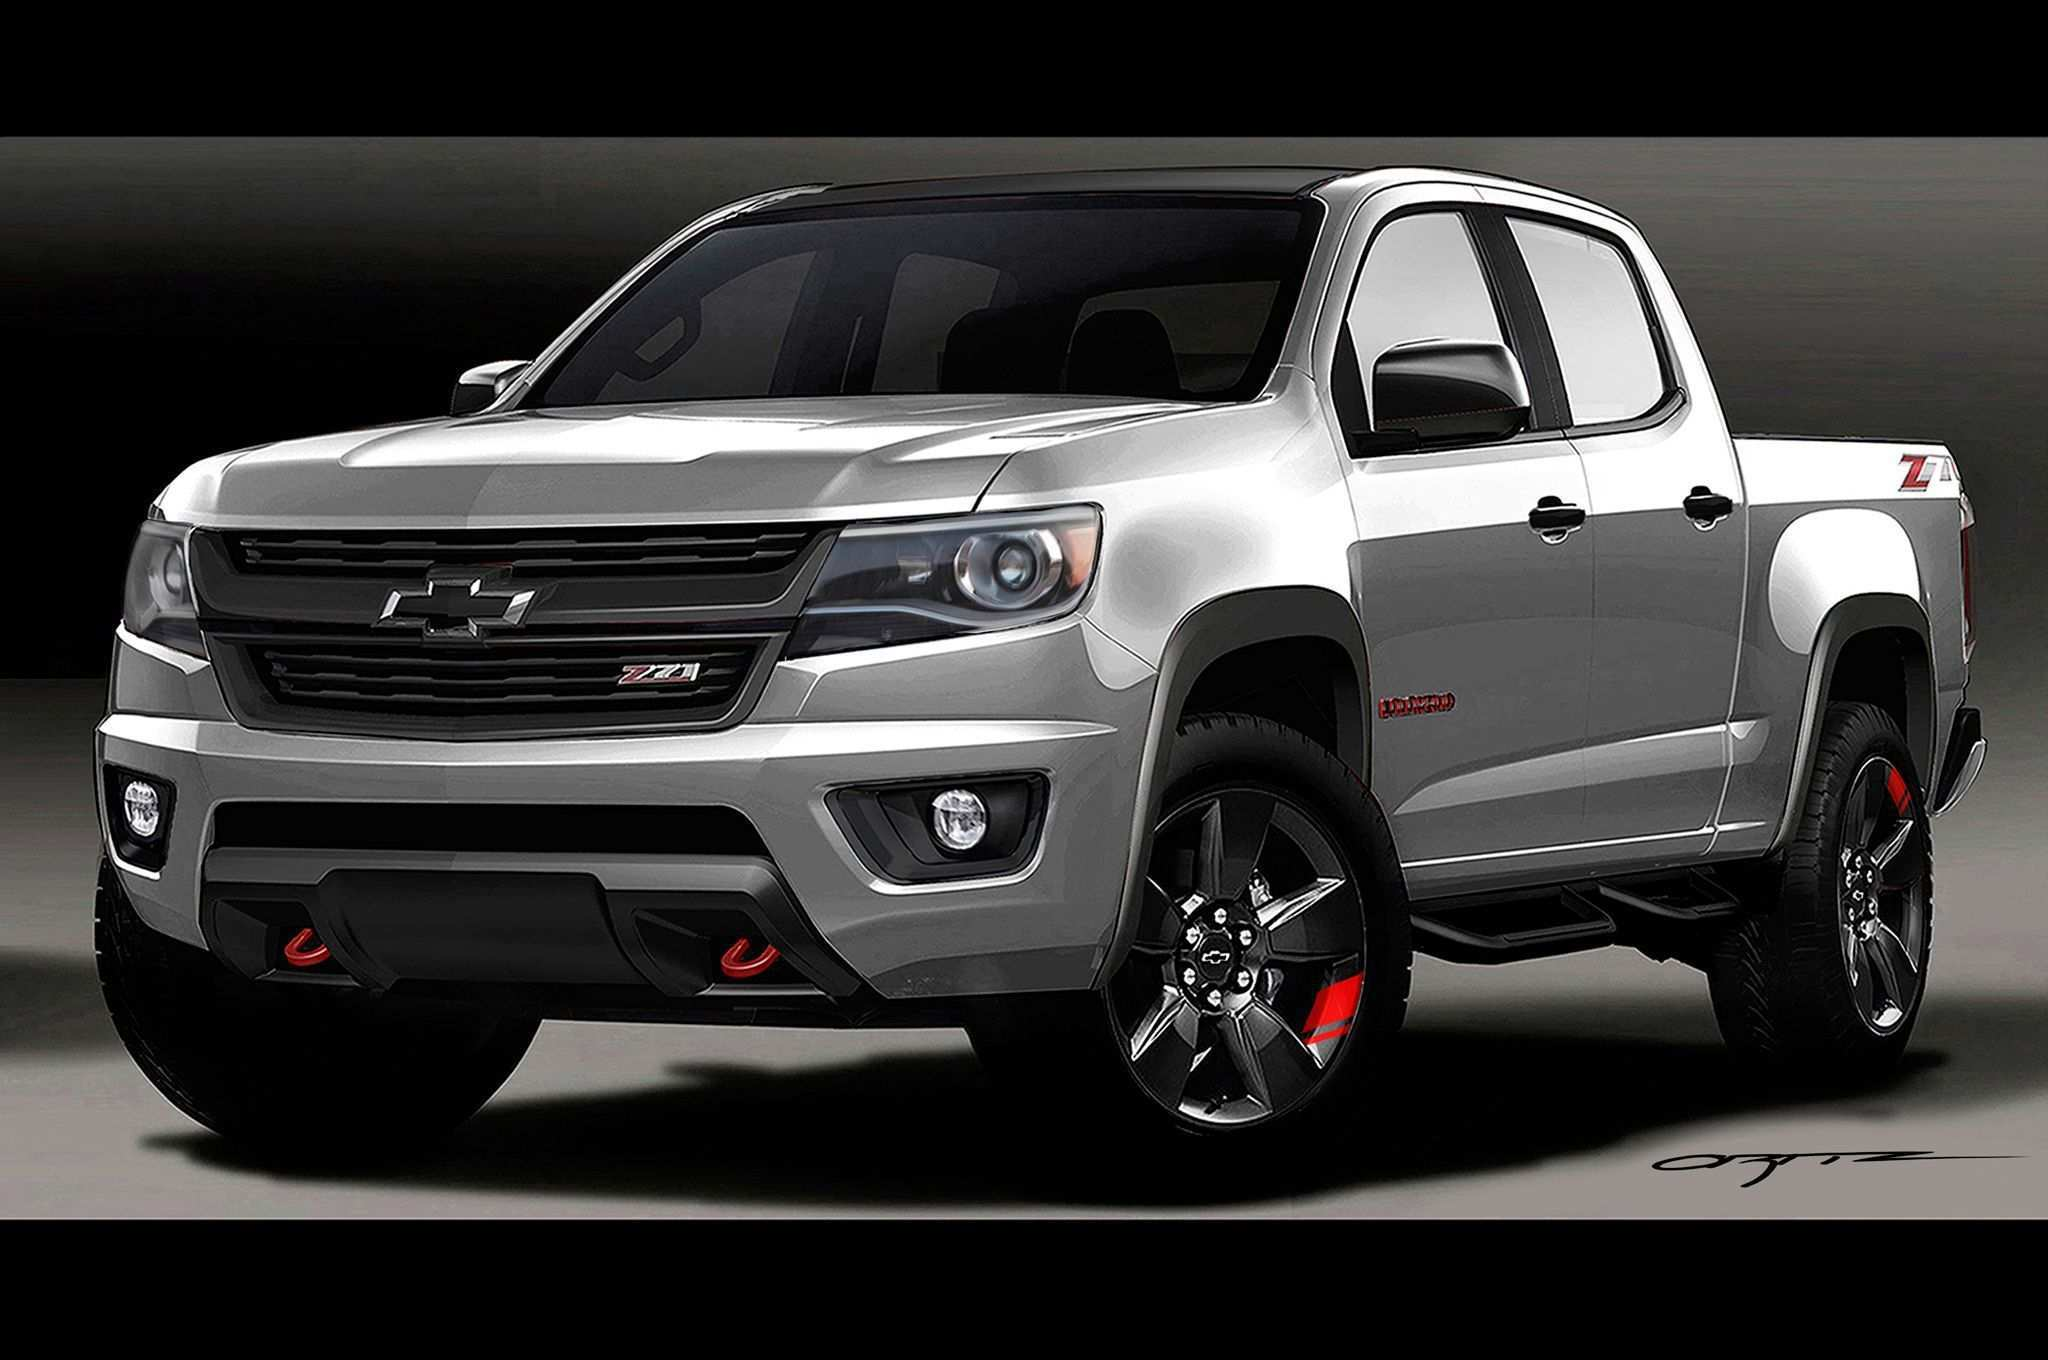 30 All New 2020 Chevrolet Colorado Release Date Model with 2020 Chevrolet Colorado Release Date